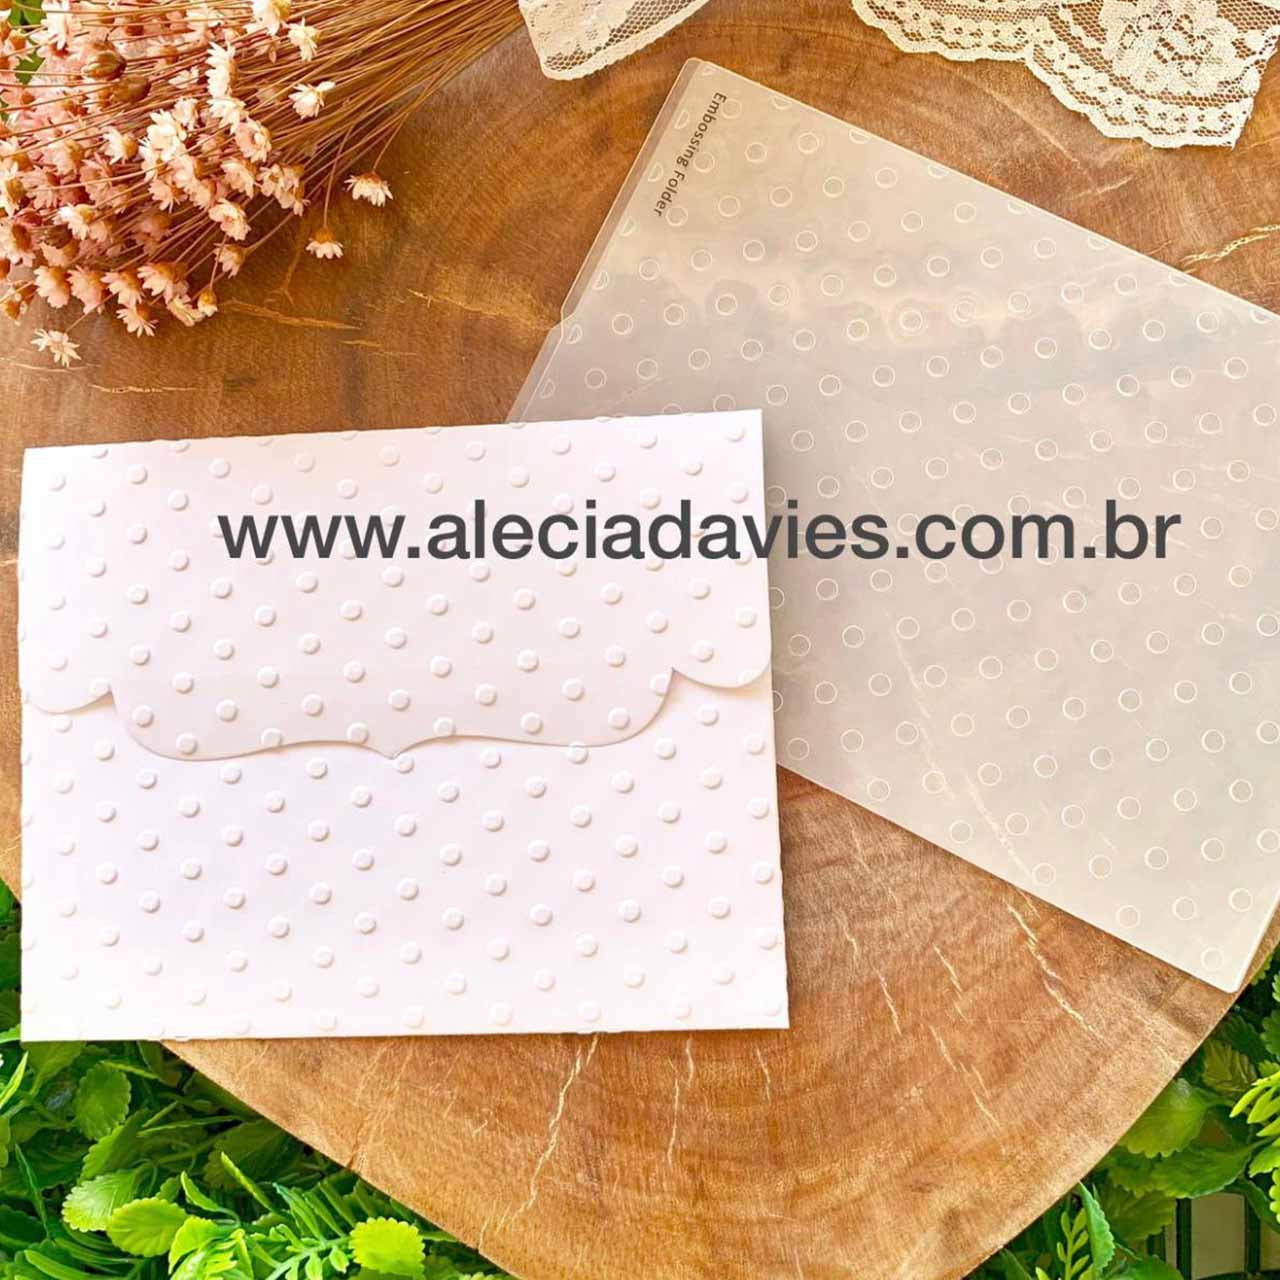 Faca envelope aba decorada